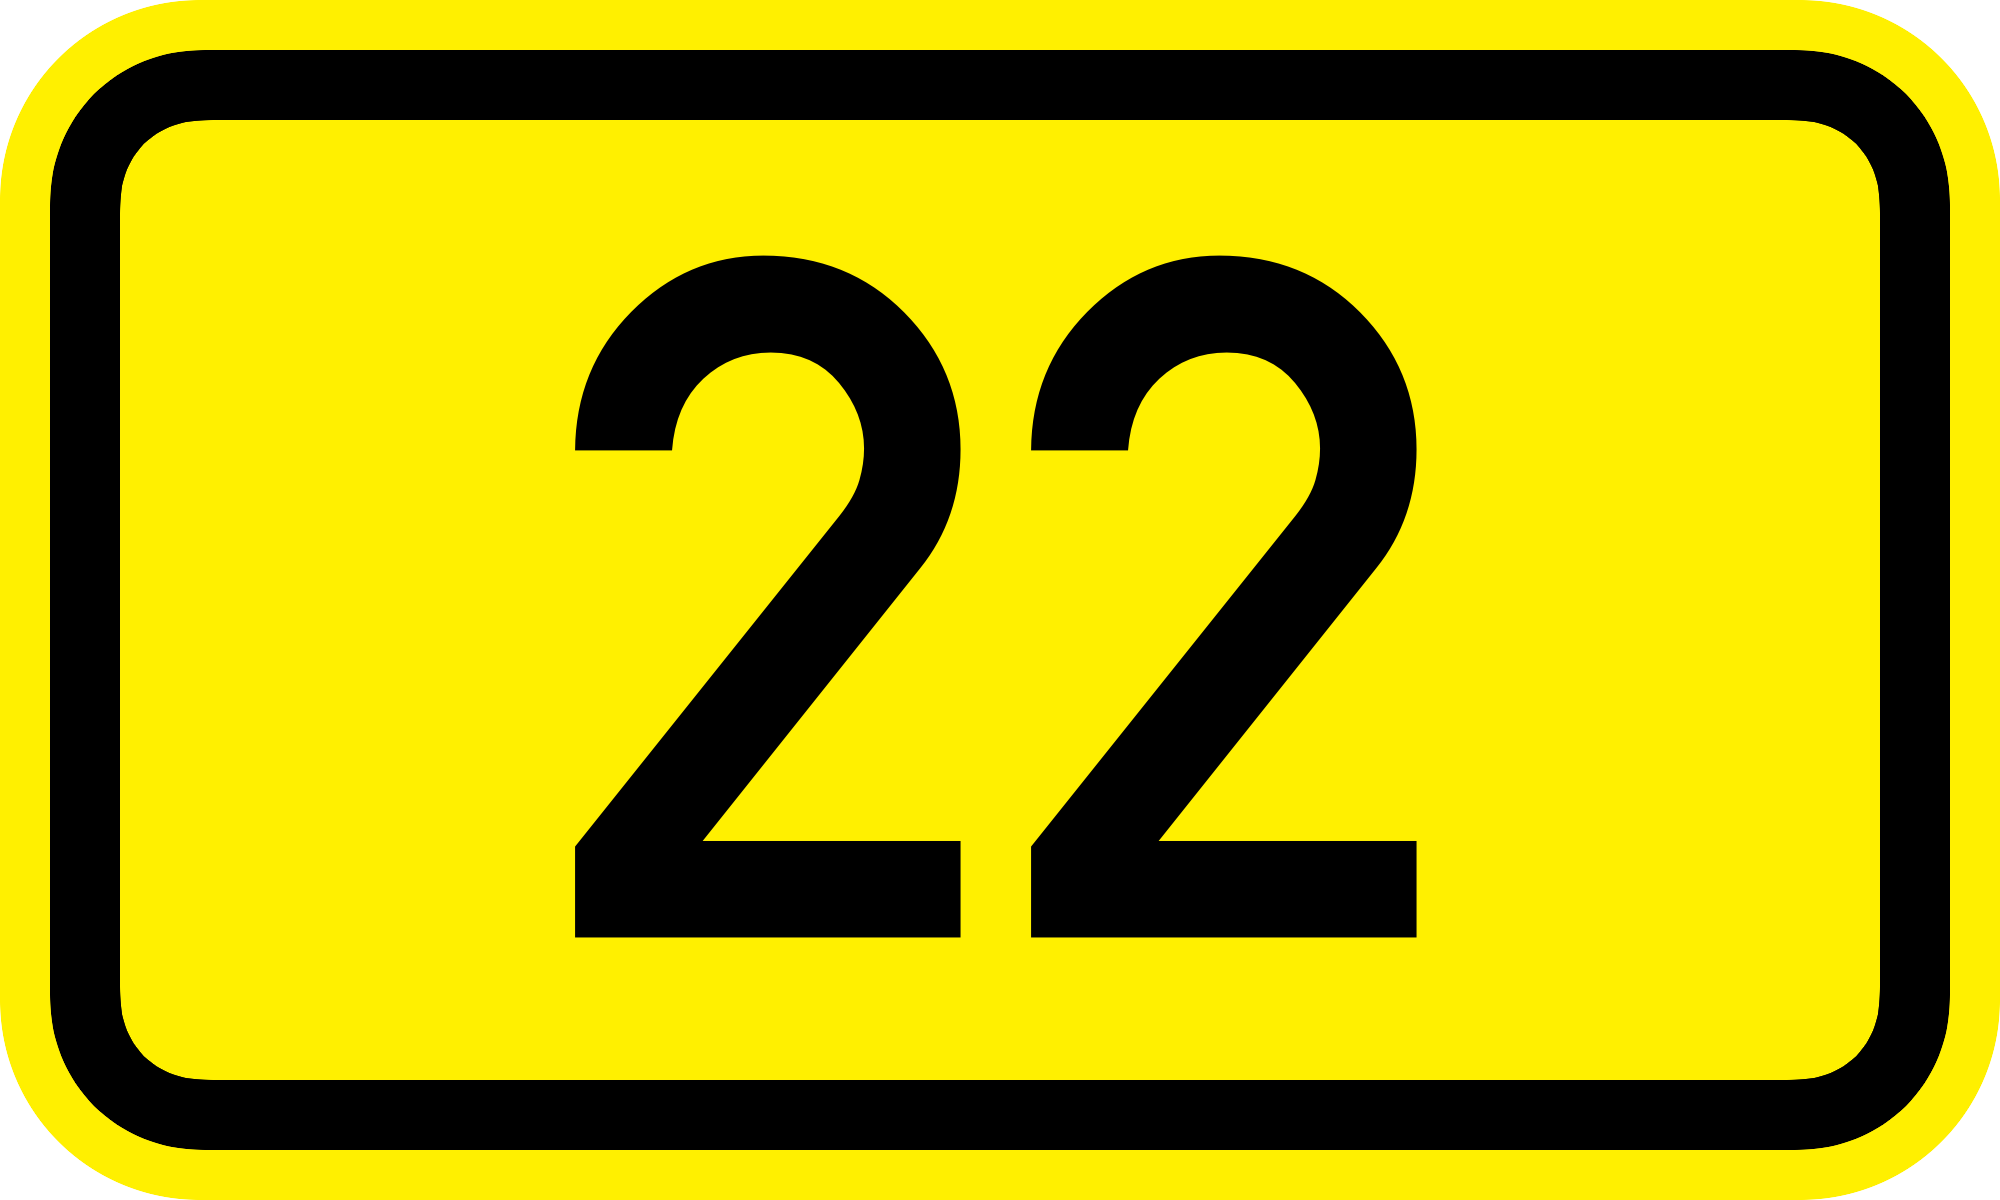 Number 22 clipart.